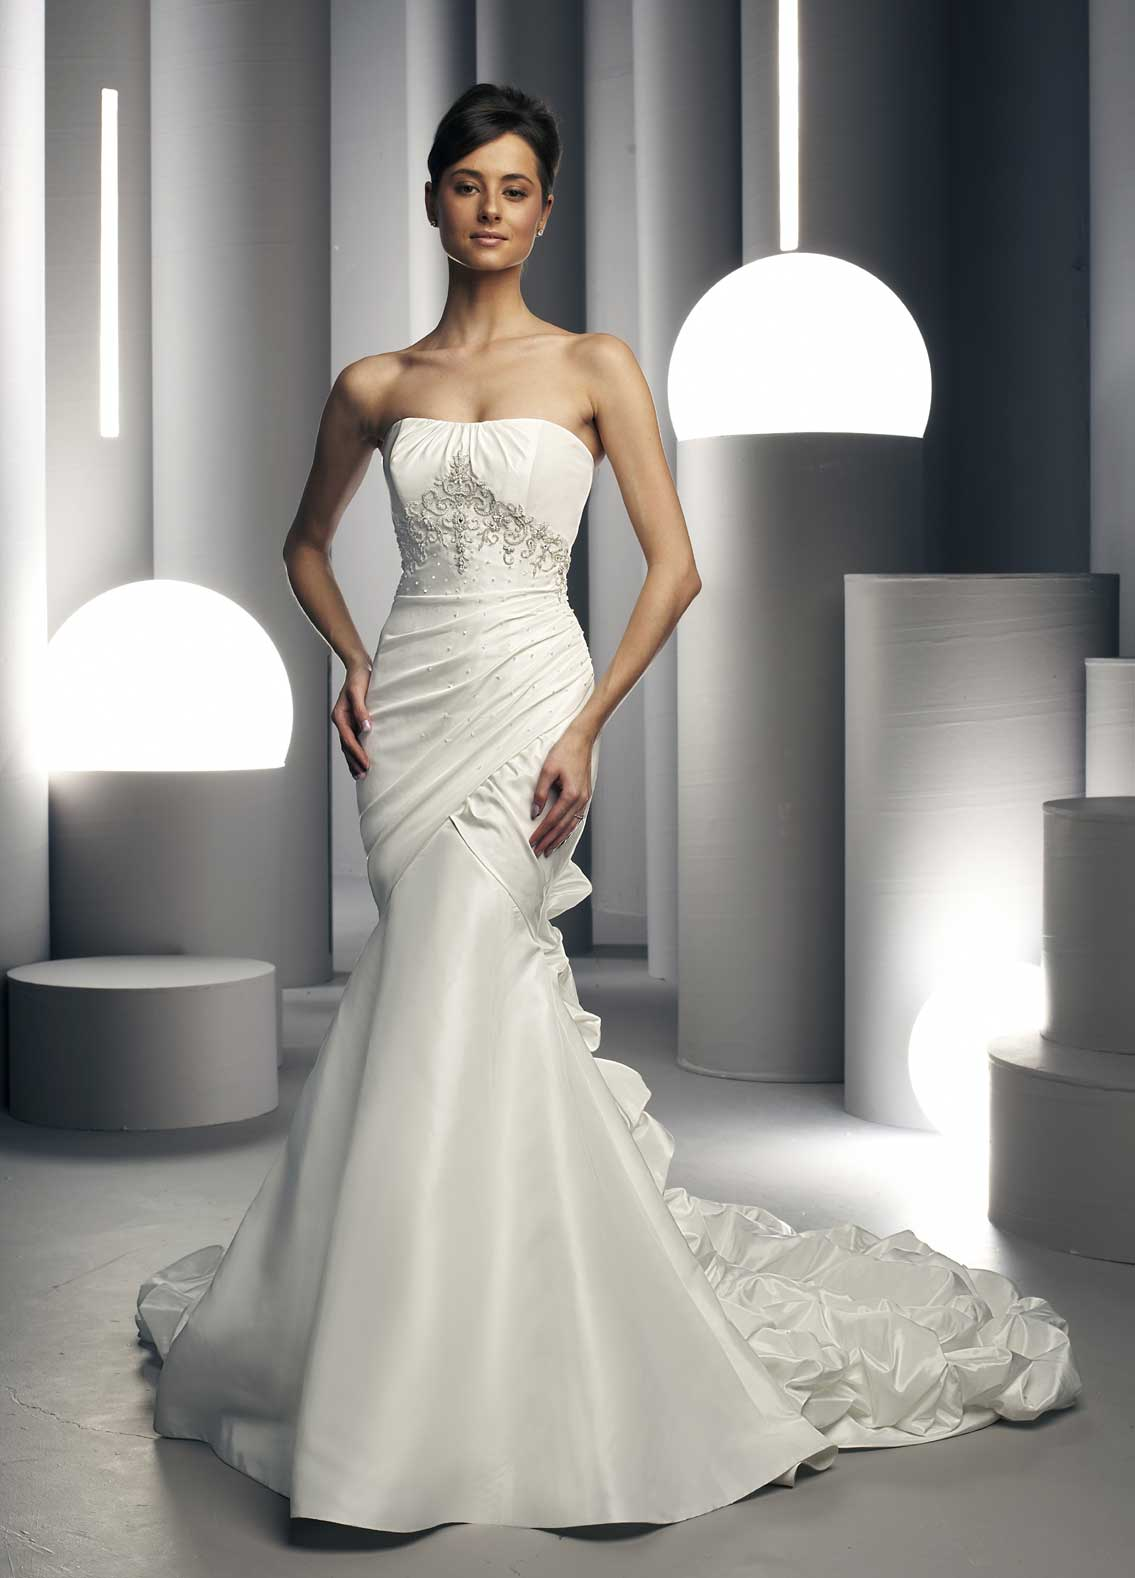 Various kinds of wedding dresses with new models: White Wedding Dress